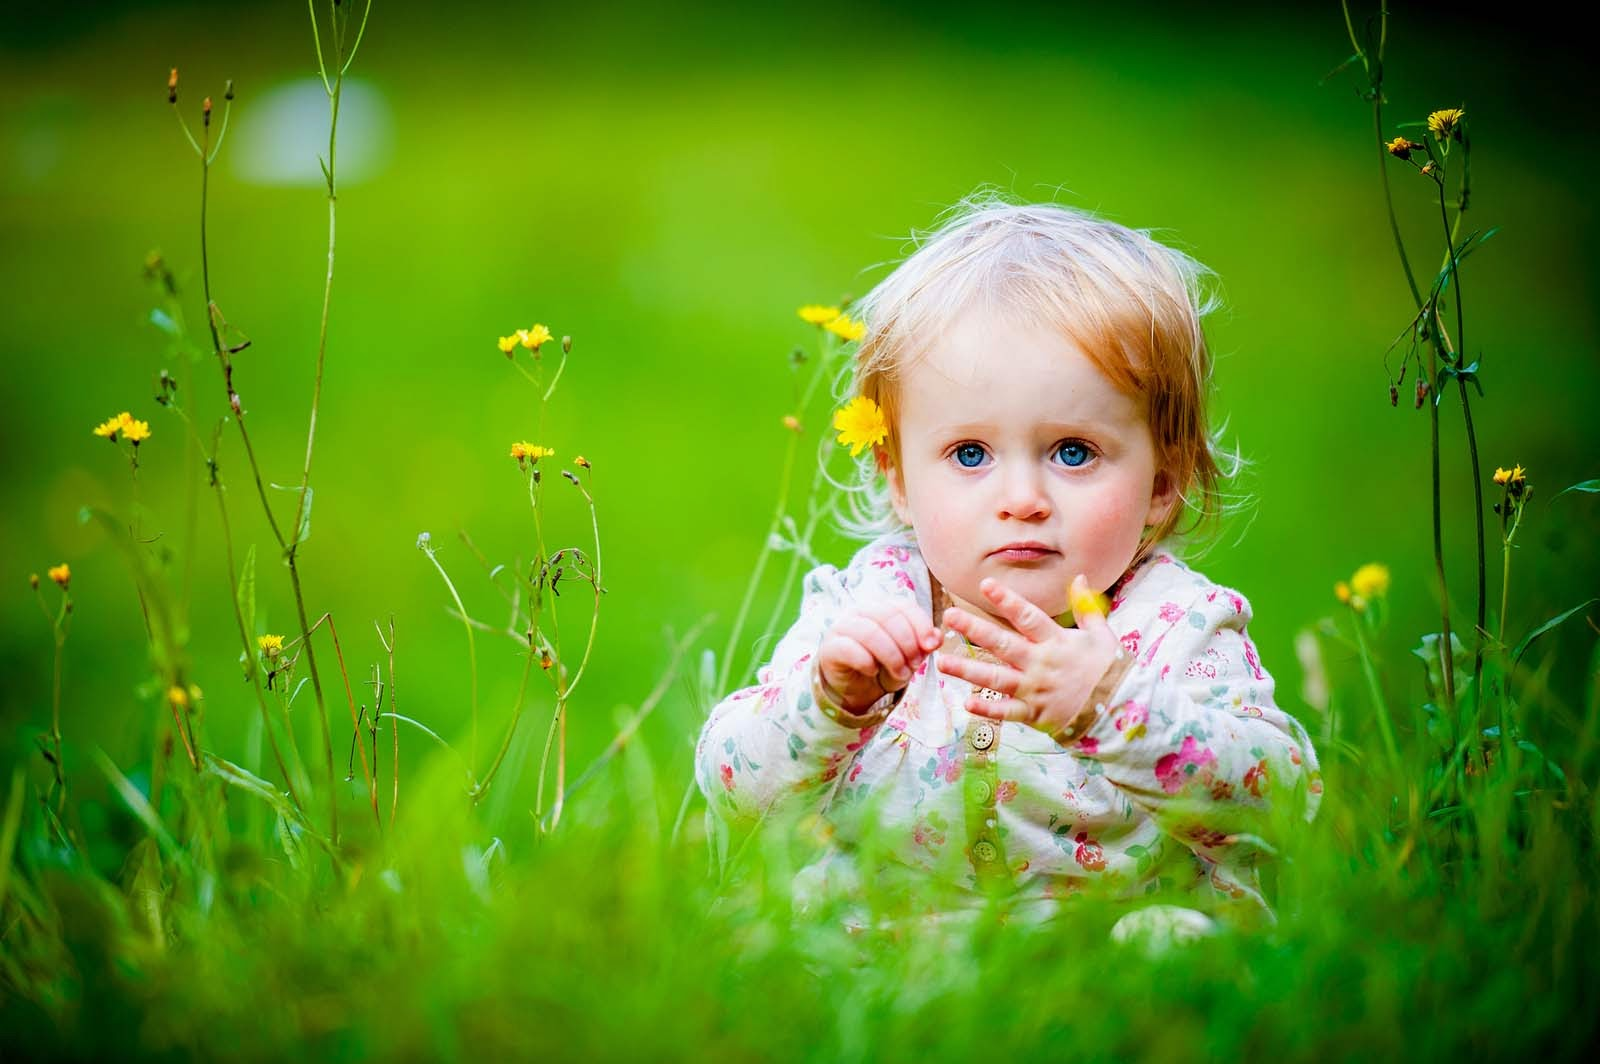 Baby Wallpapers baby girls hd wallpapers